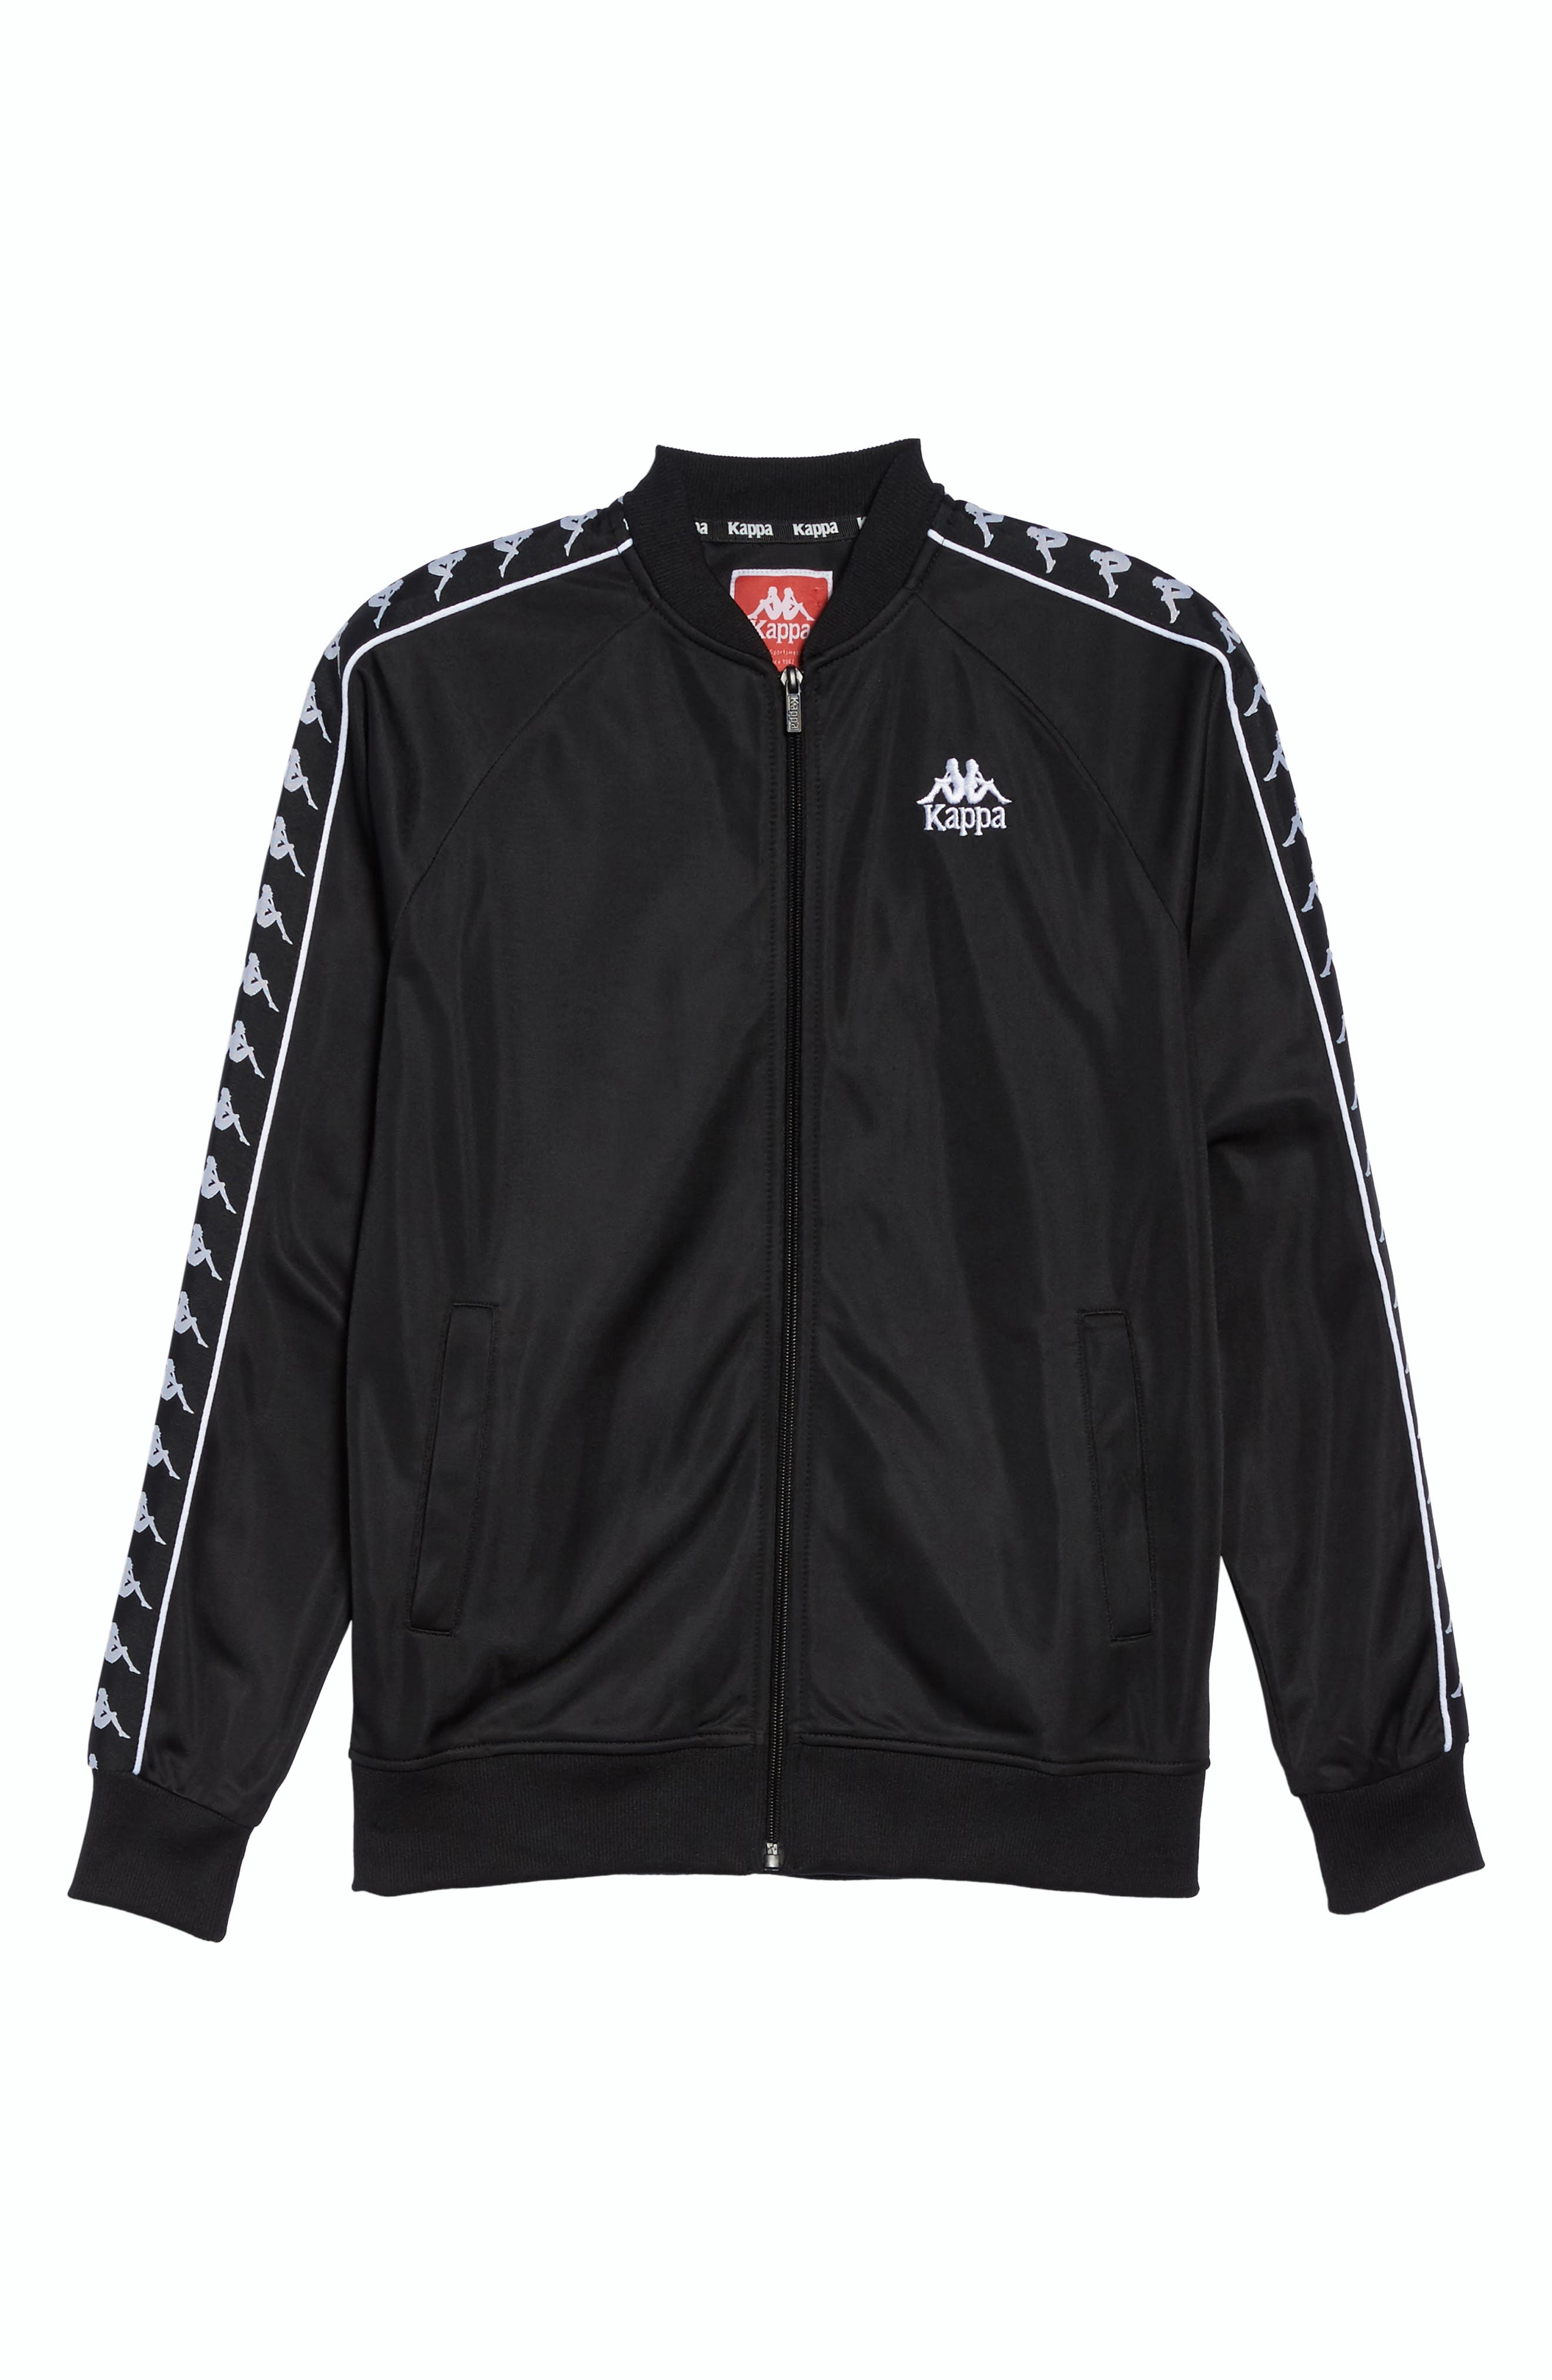 Authentic Morecambe Track Jacket,                             Alternate thumbnail 7, color,                             001